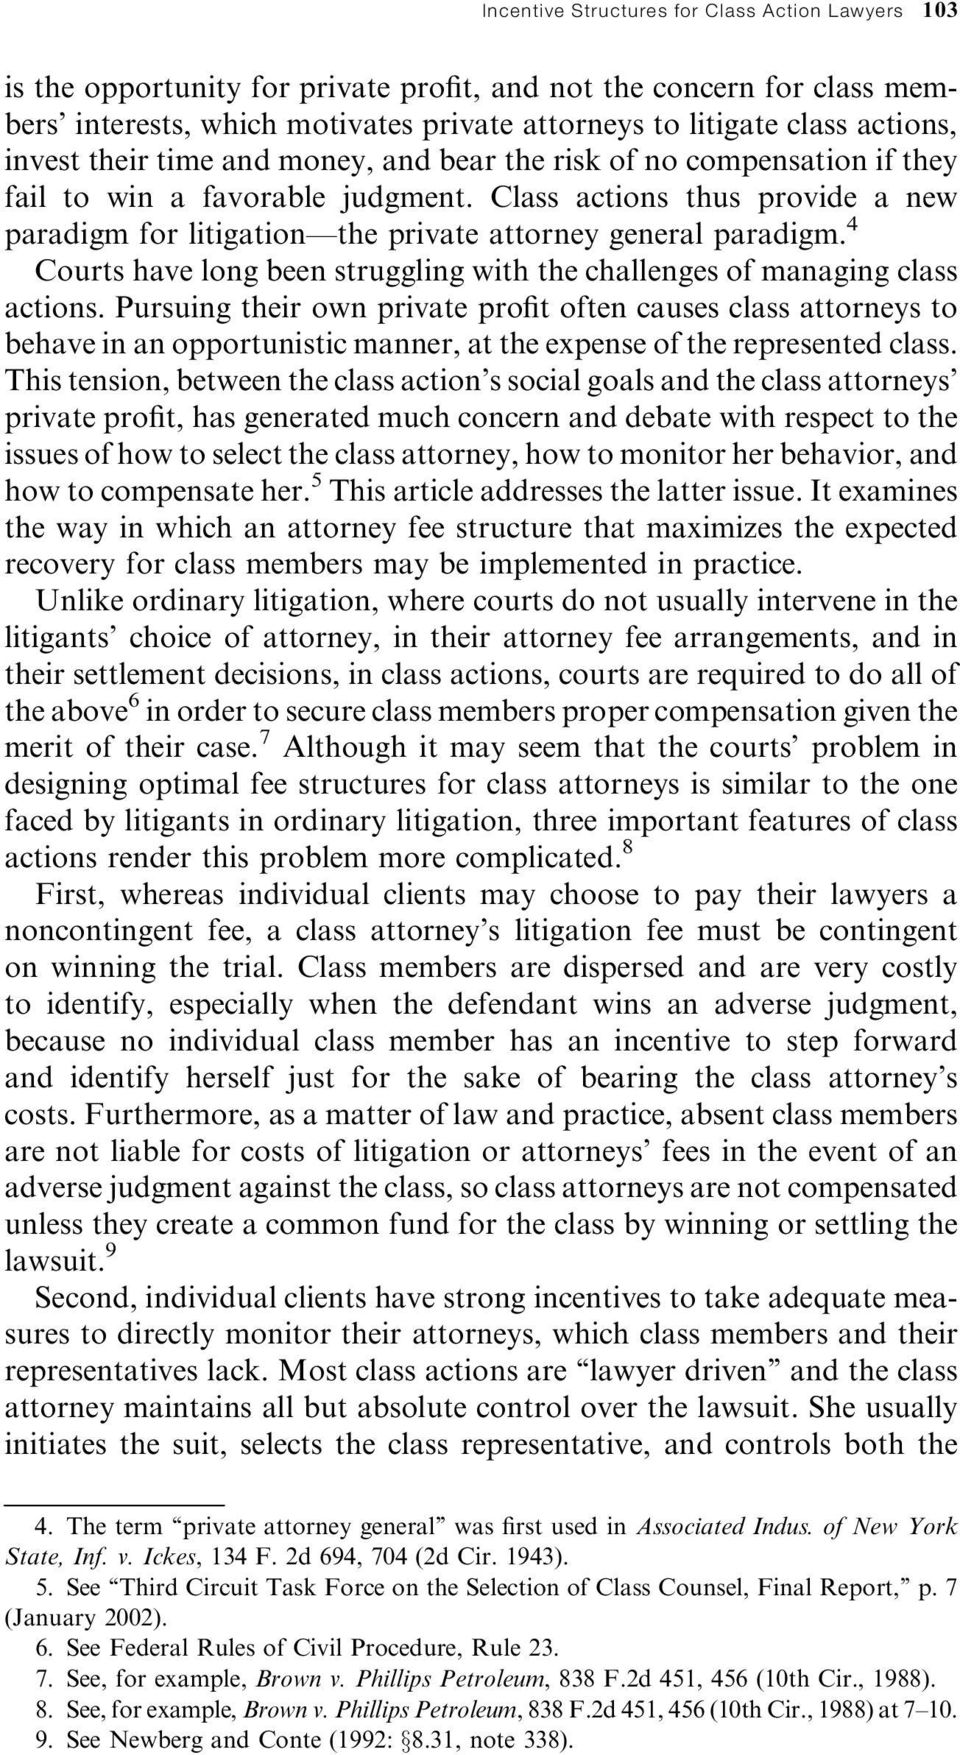 Class actions thus provide a new paradigm for litigationðthe private attorney general paradigm. 4 Courts have long been struggling with the challenges of managing class actions.